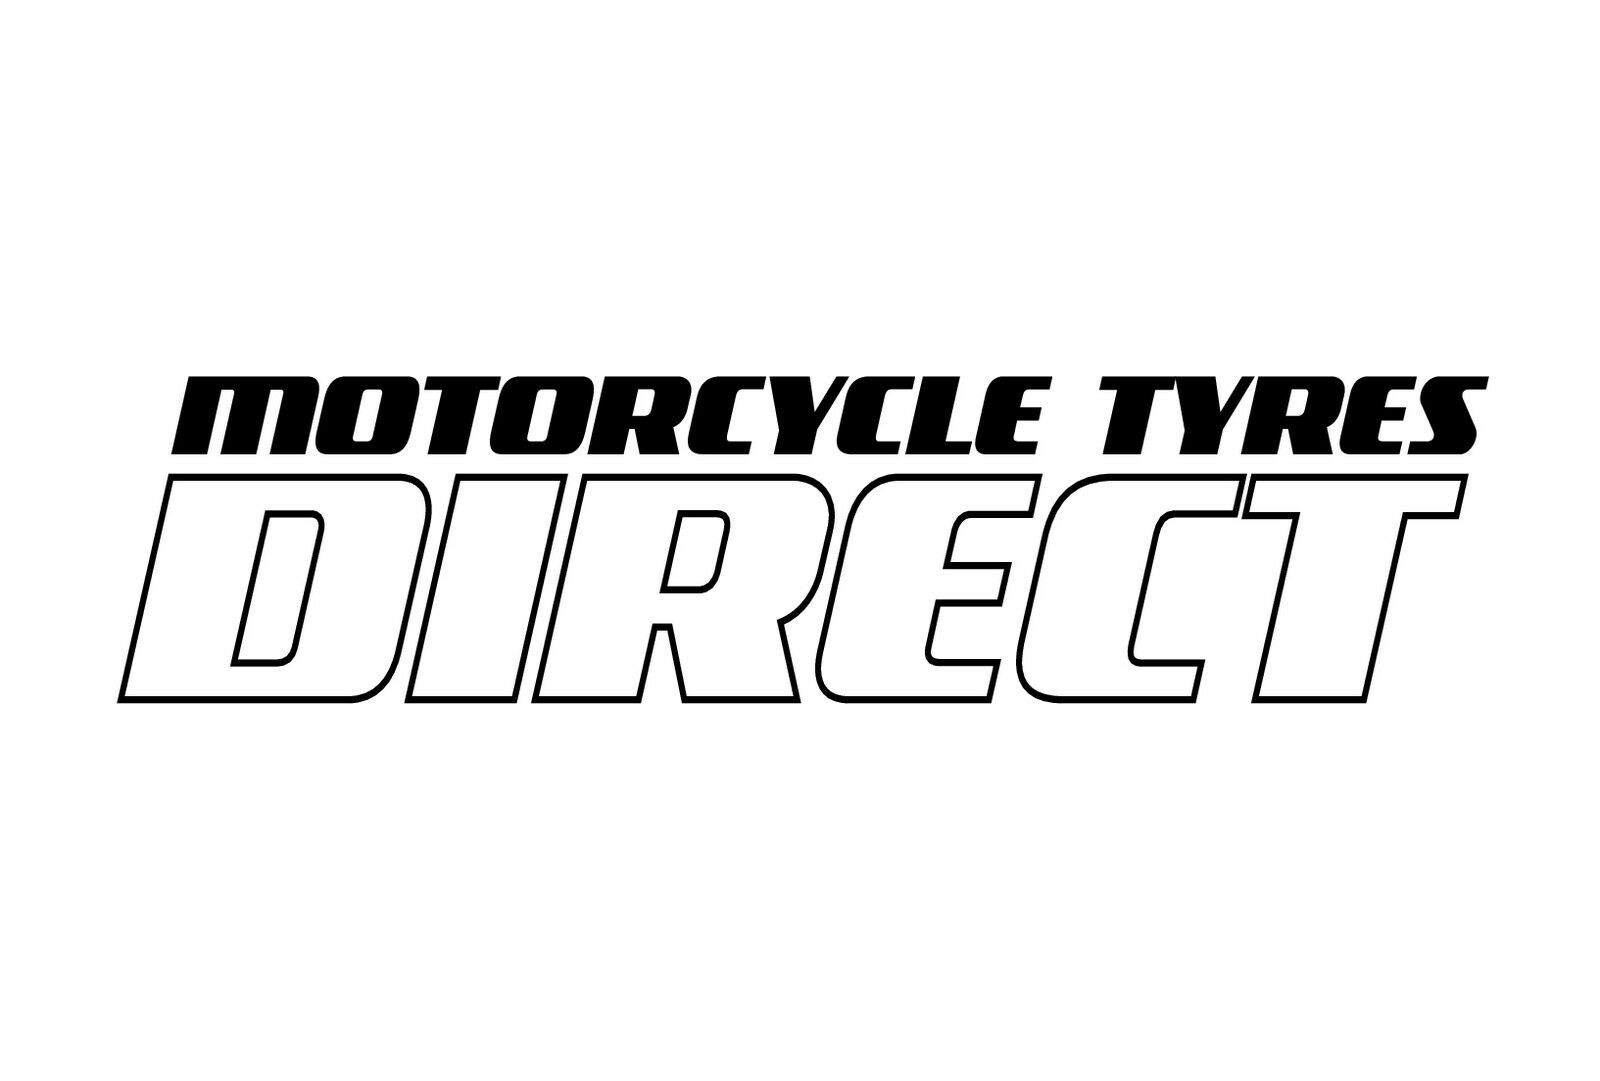 MOTORCYCLE TYRES DIRECT